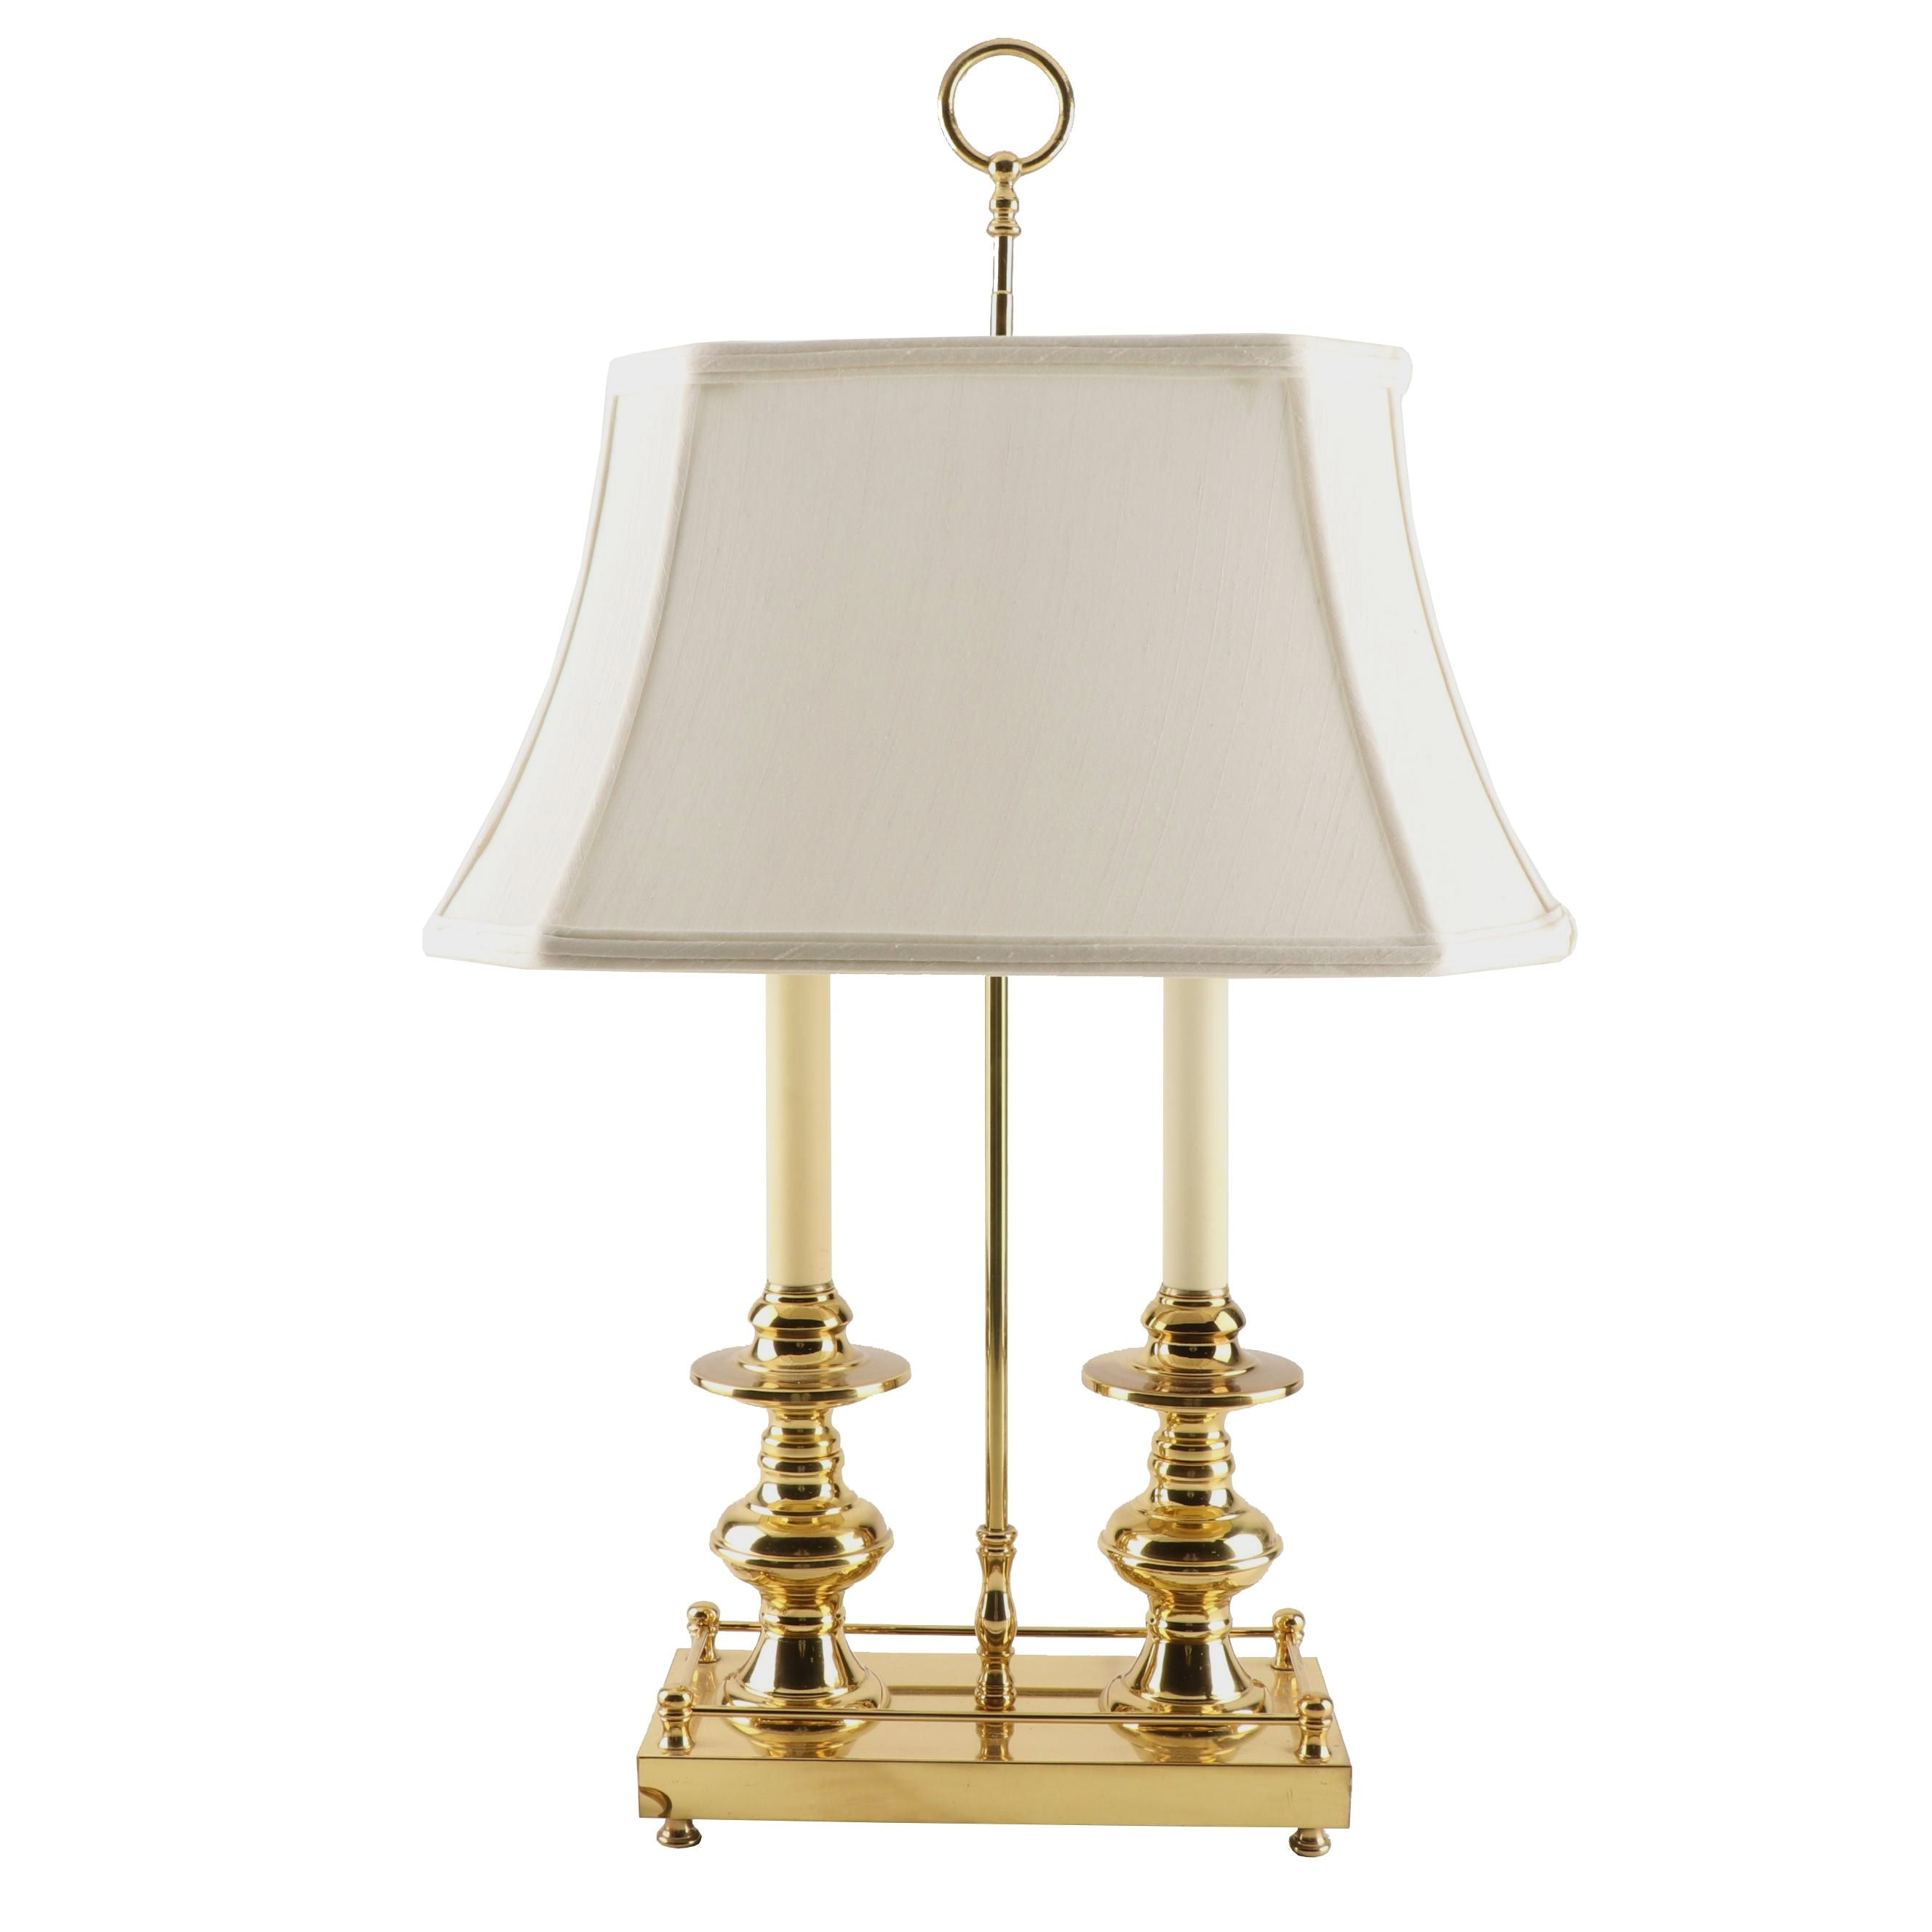 Brass Bouillotte Style Two-Light Table Lamp with Shade